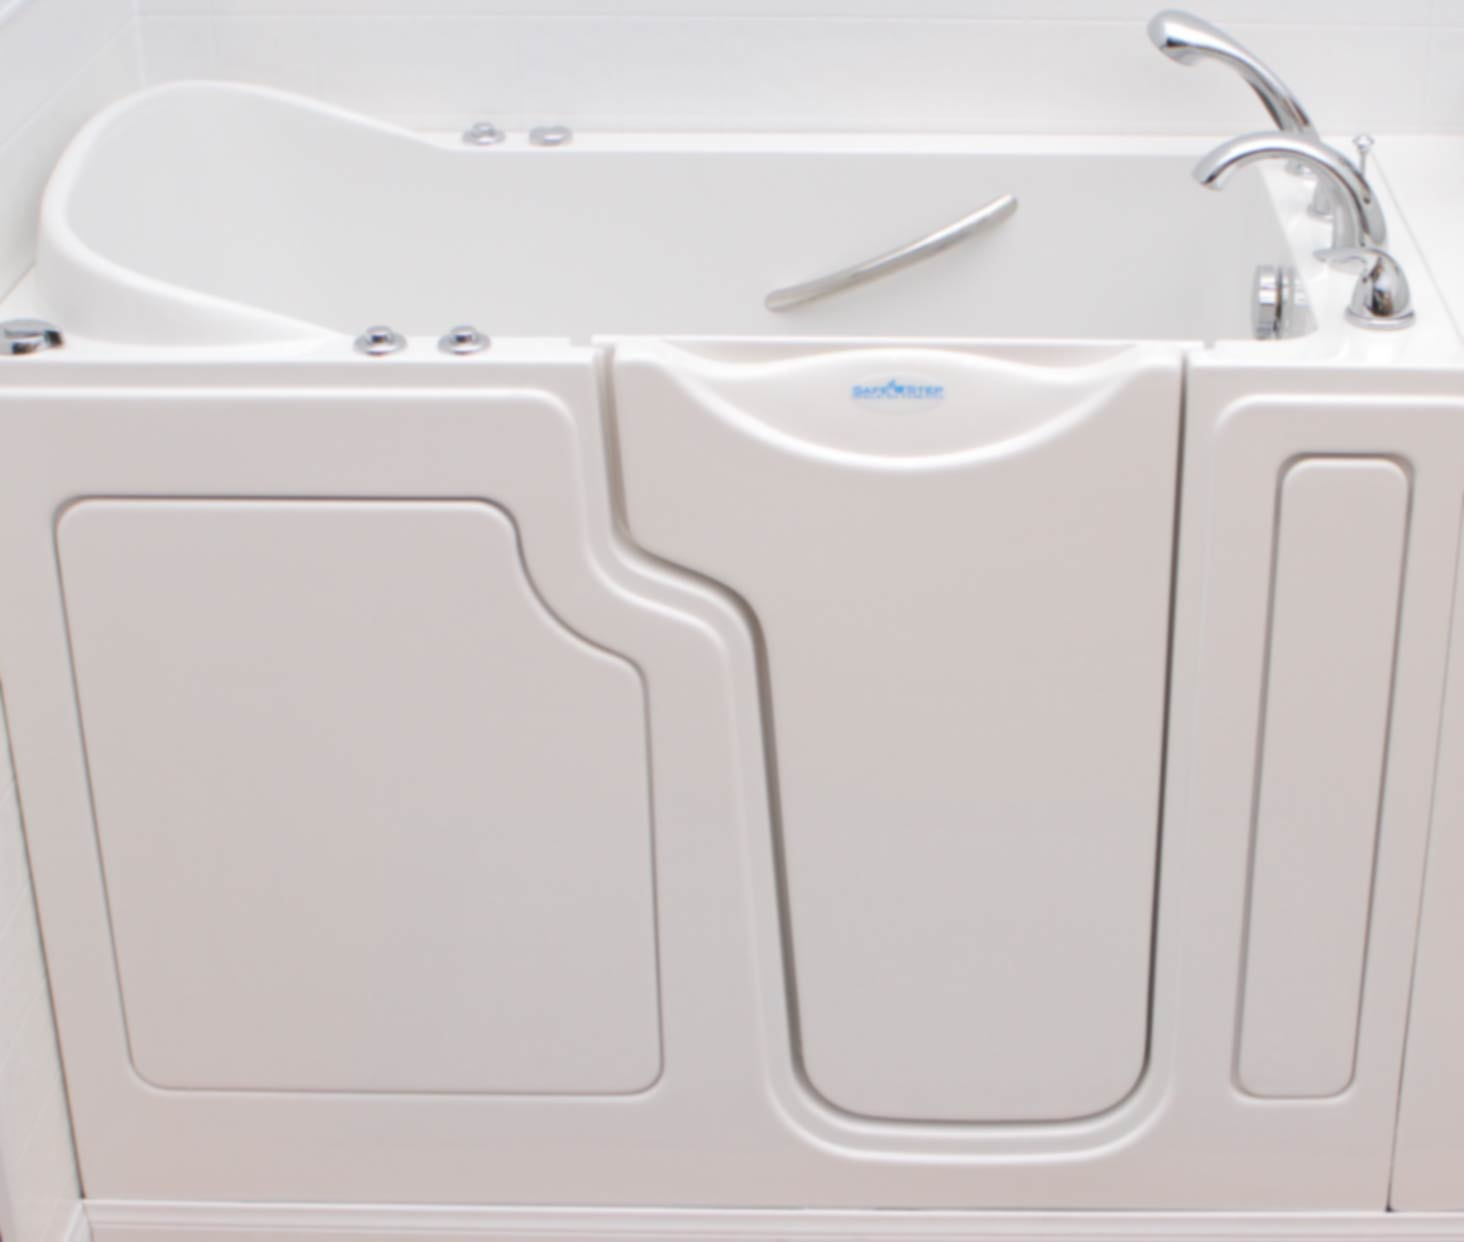 safe step walk in tubs review comparison picture. Walk In Tub Reviews  Ratings and Comparisons